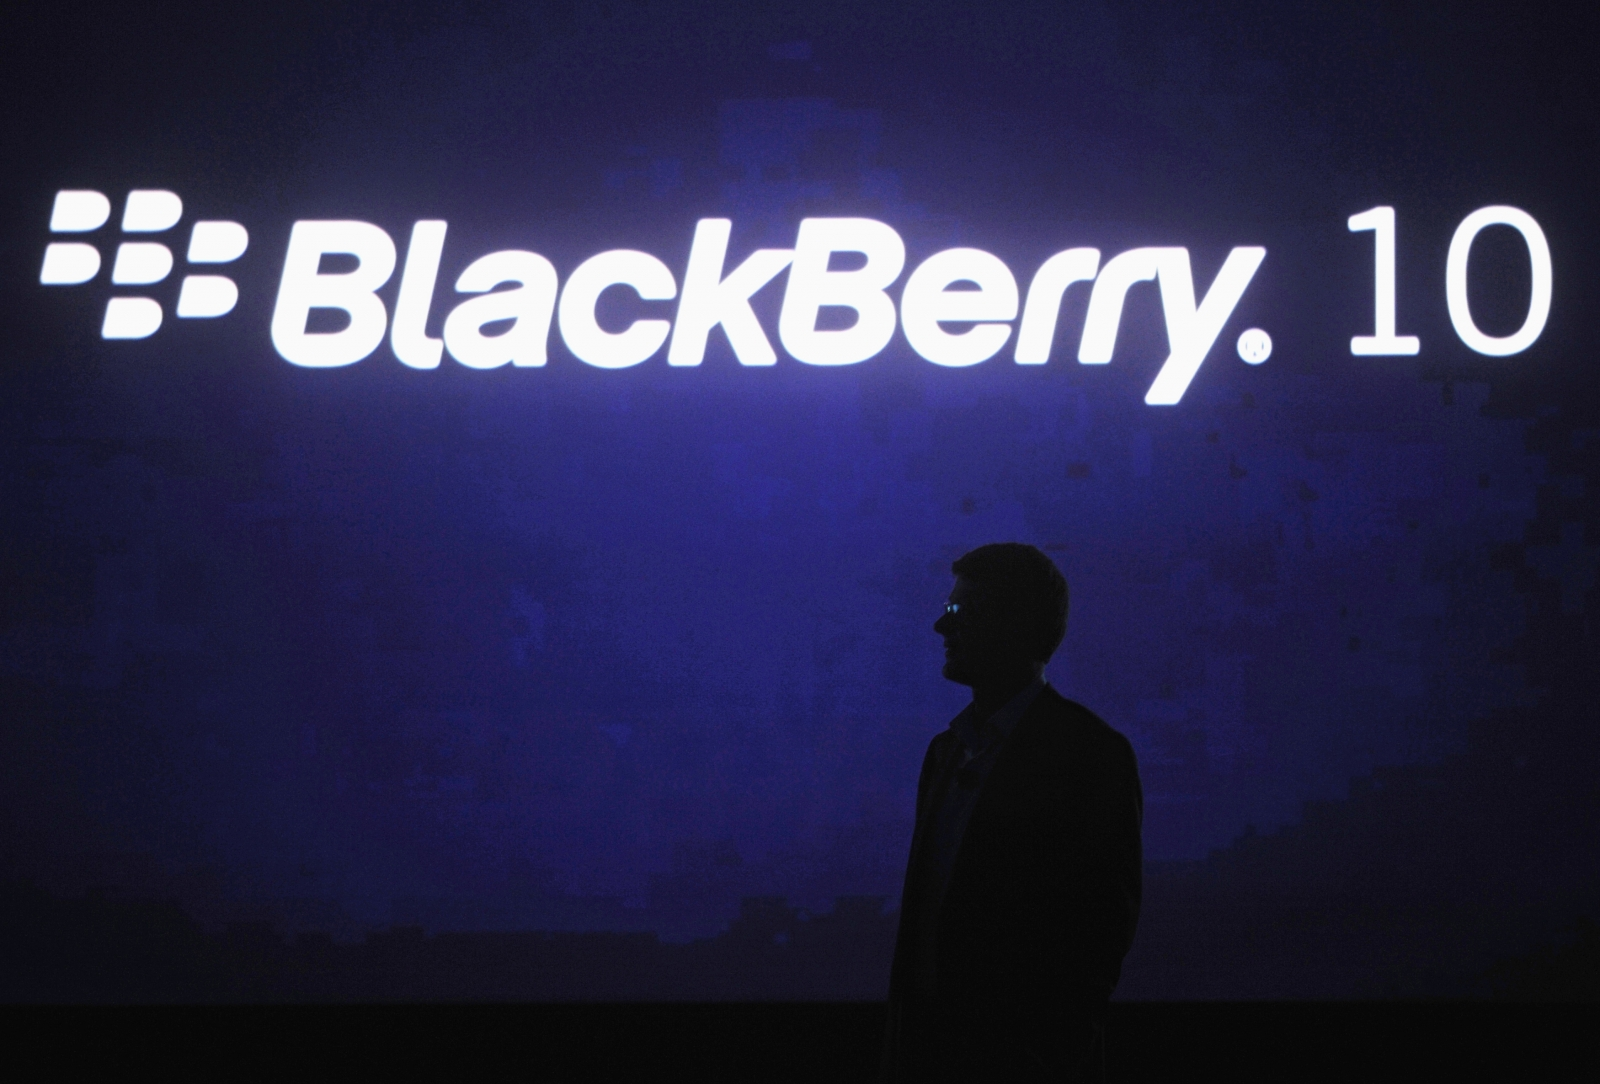 BlackBerry Enterprise IM client application